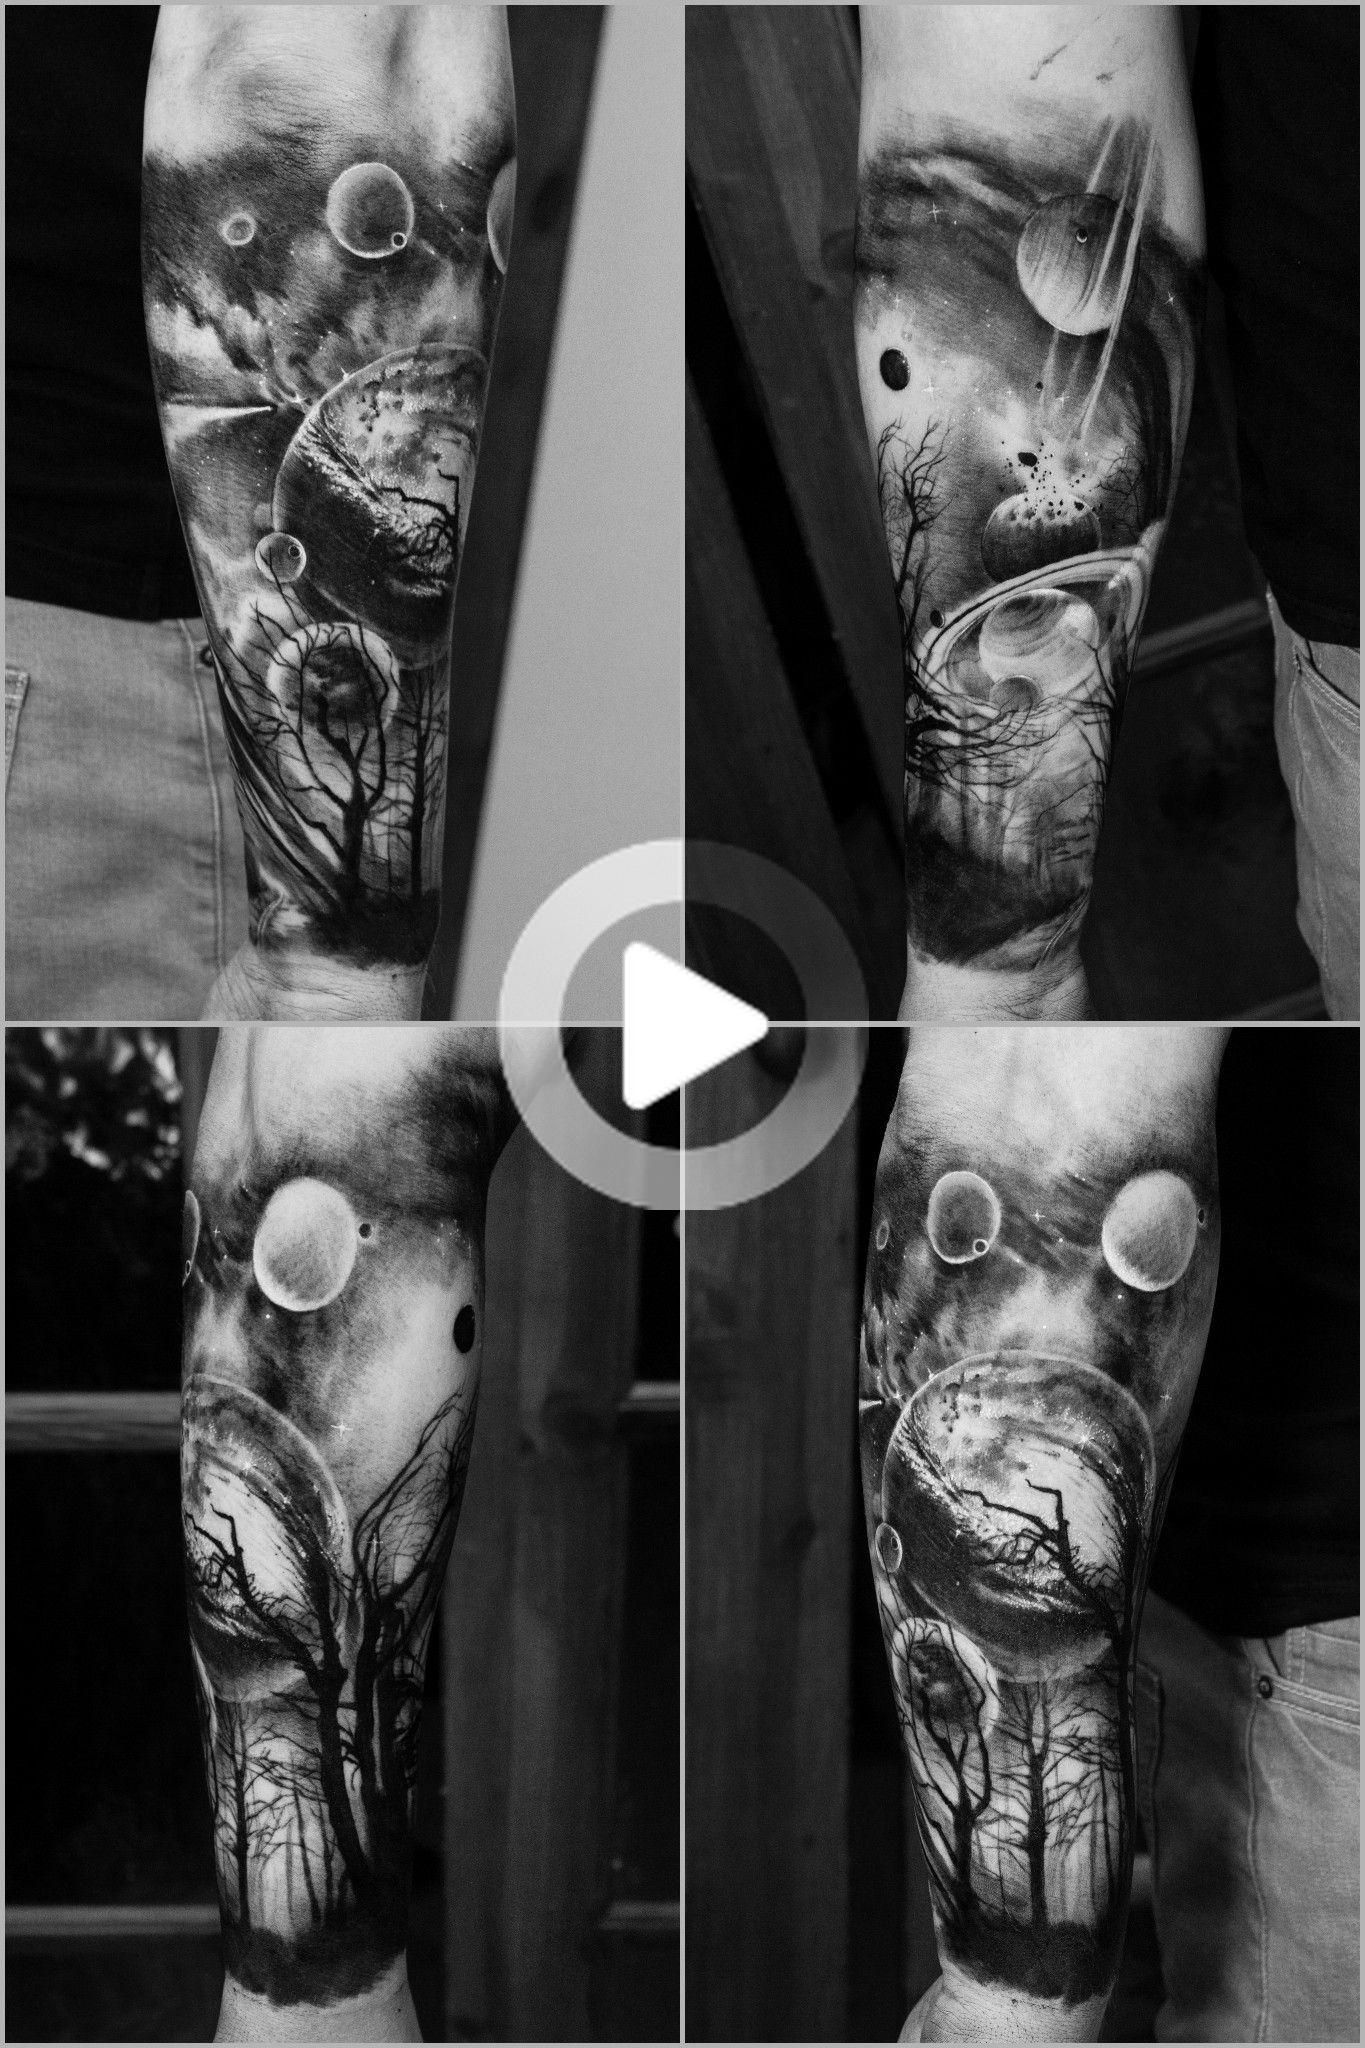 Half Sleeve Space Tattoo With Foggy Forest And Road By Elle Gottzi Inkdependent Tattoo In 2020 Space Tattoo Foggy Forest Tattoos